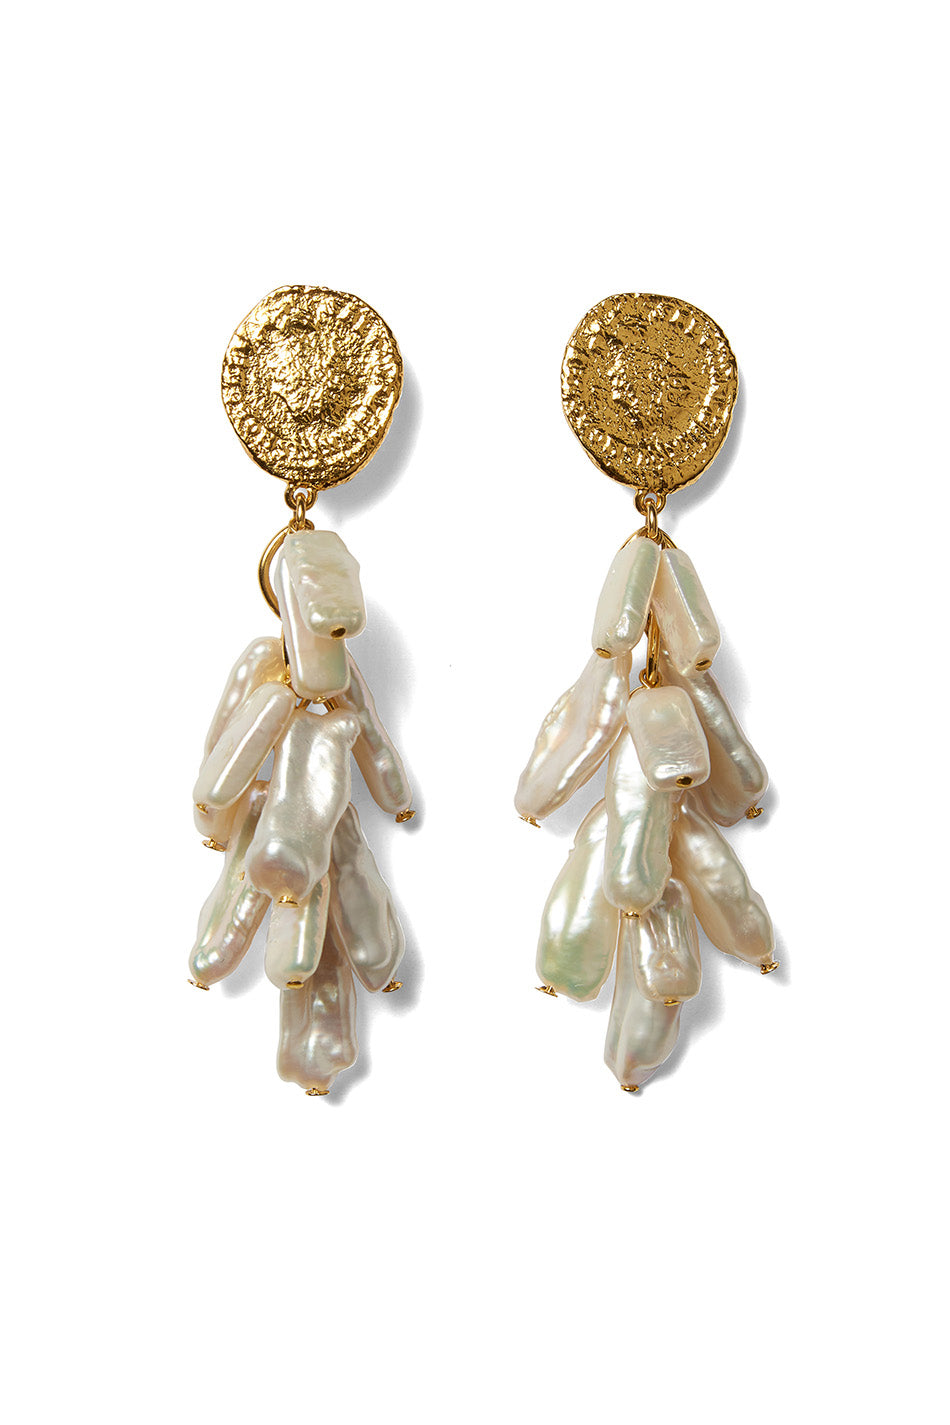 Lizzie Fortunato - roma earrings